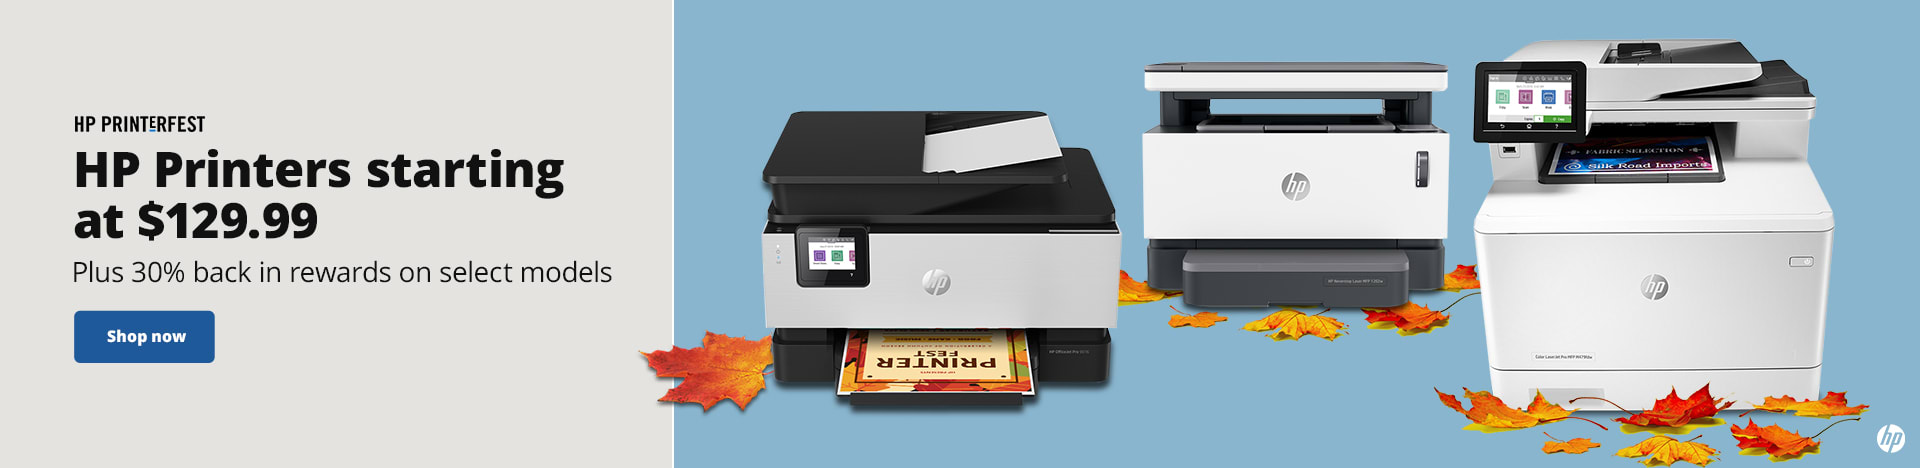 HP Printers starting at $129.99. Plus 30% back in rewards on select models